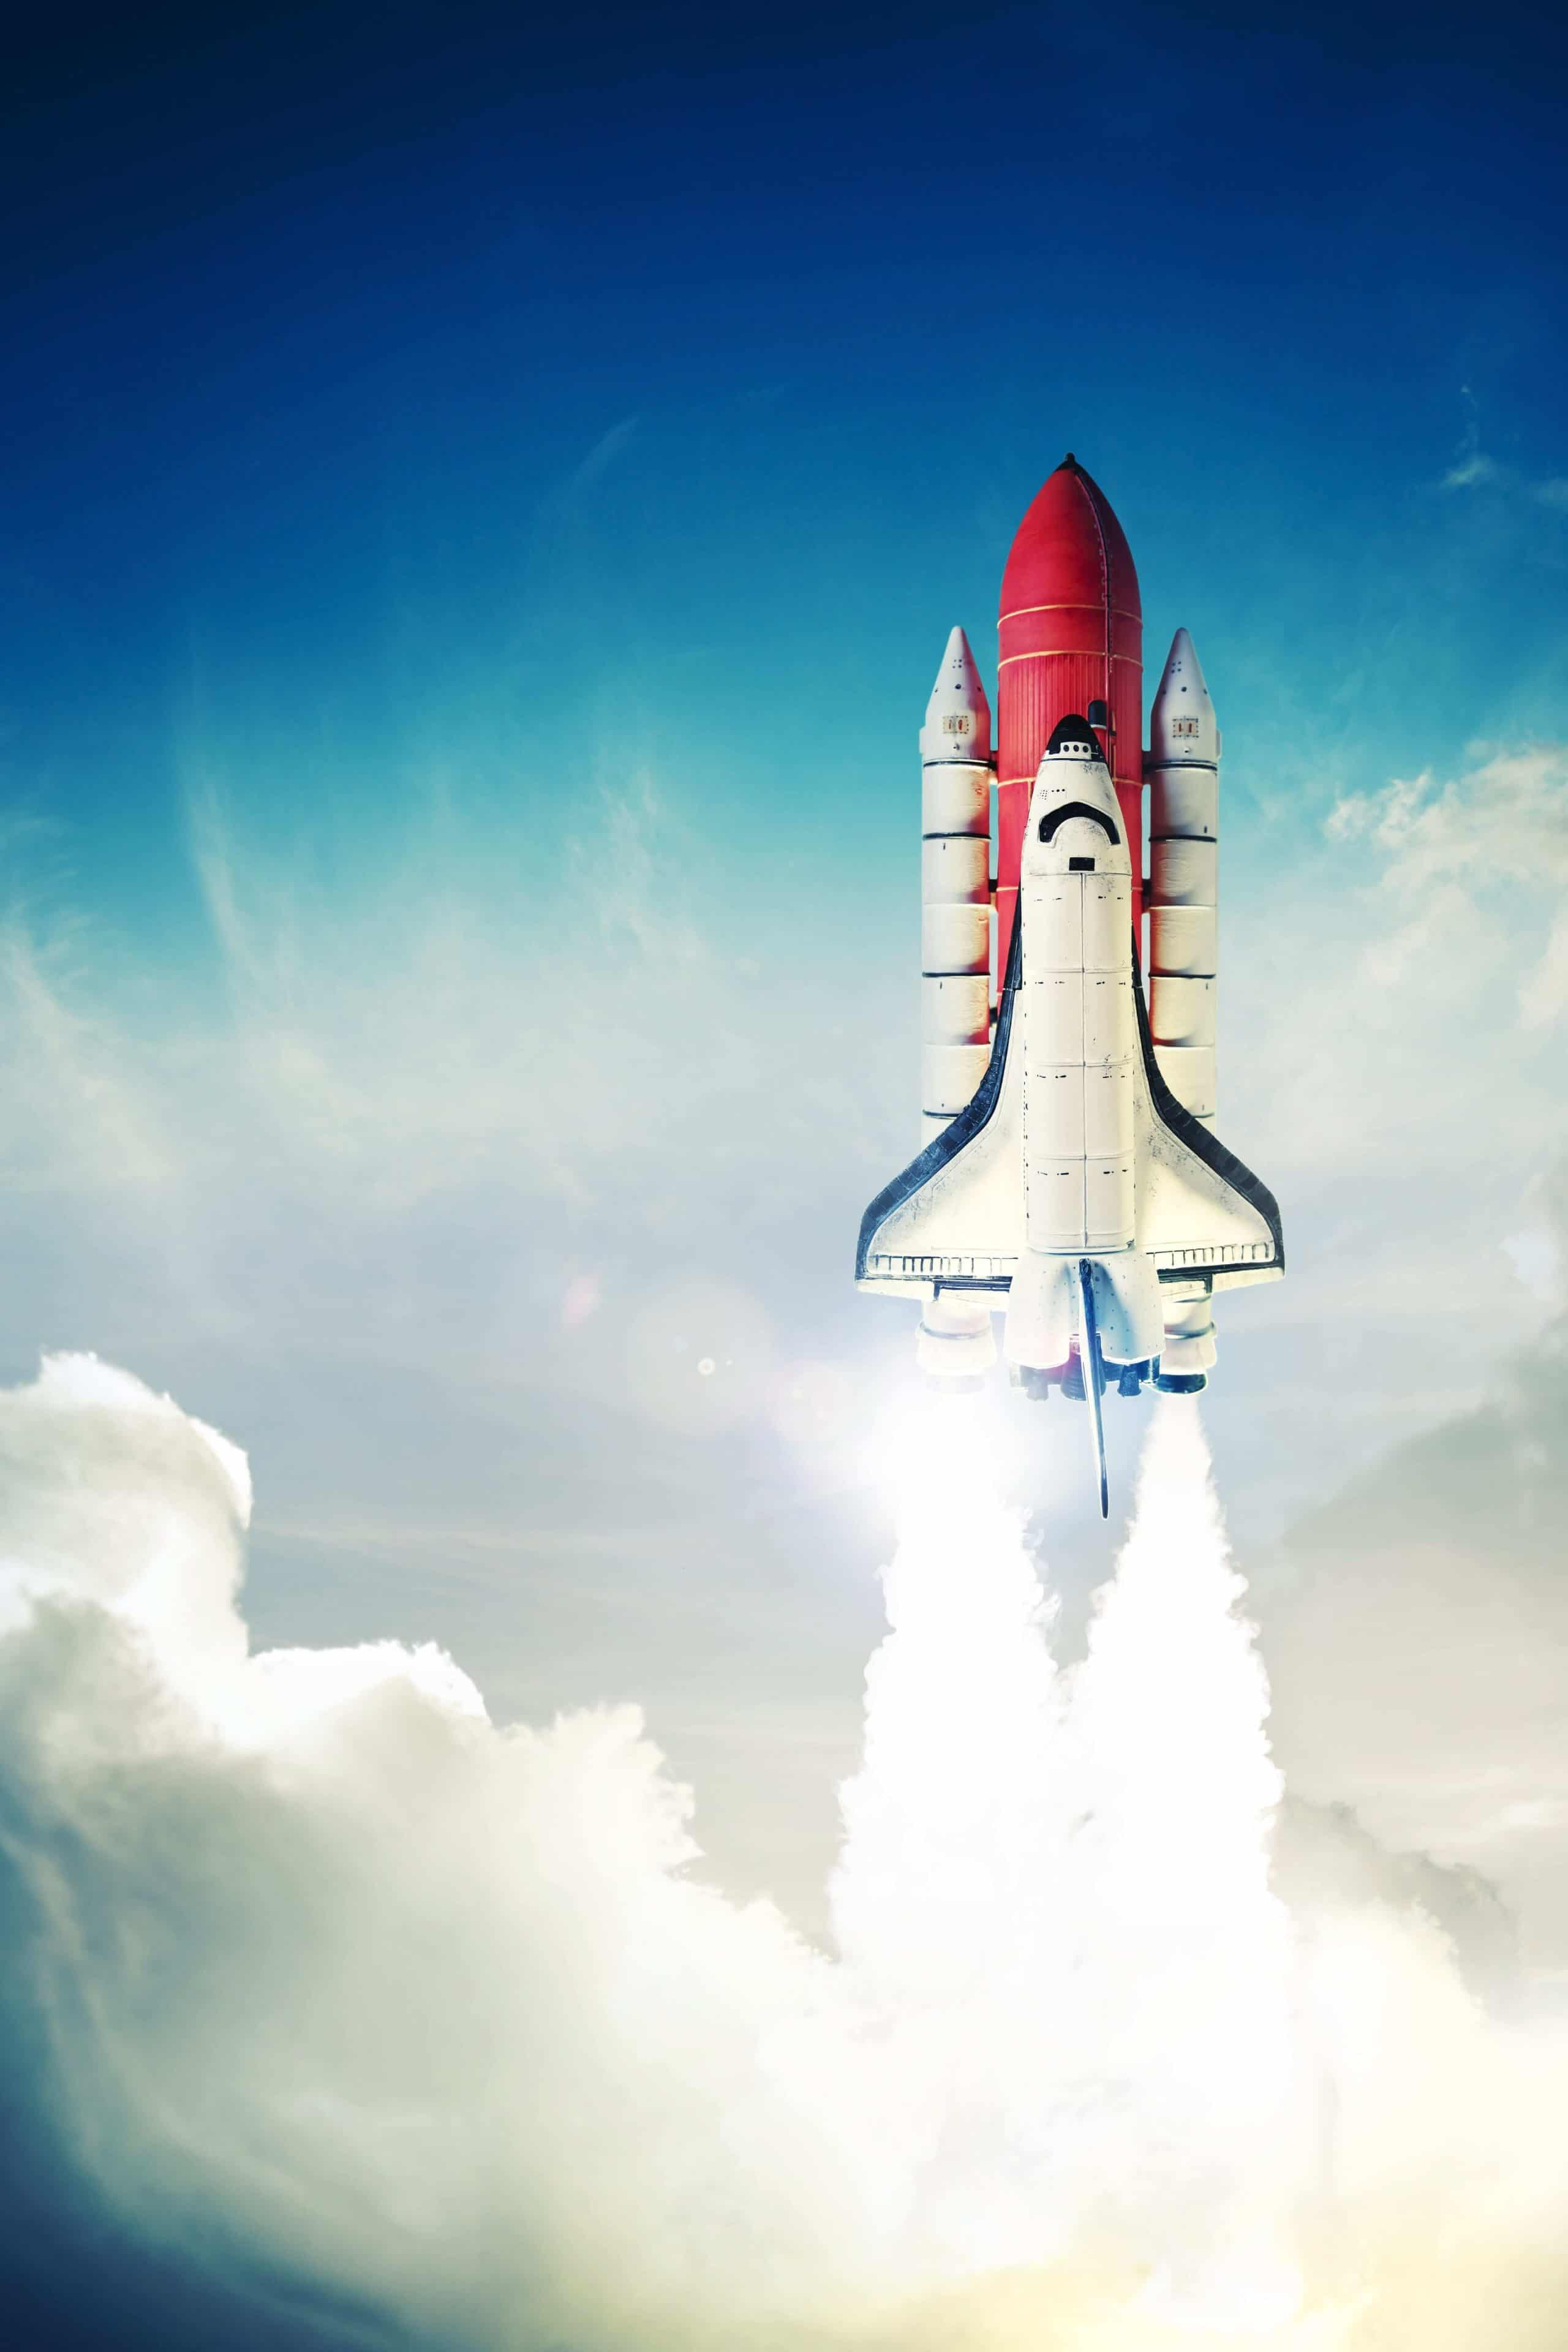 Take your sales and lead generation to new heights like a rocket blasting off